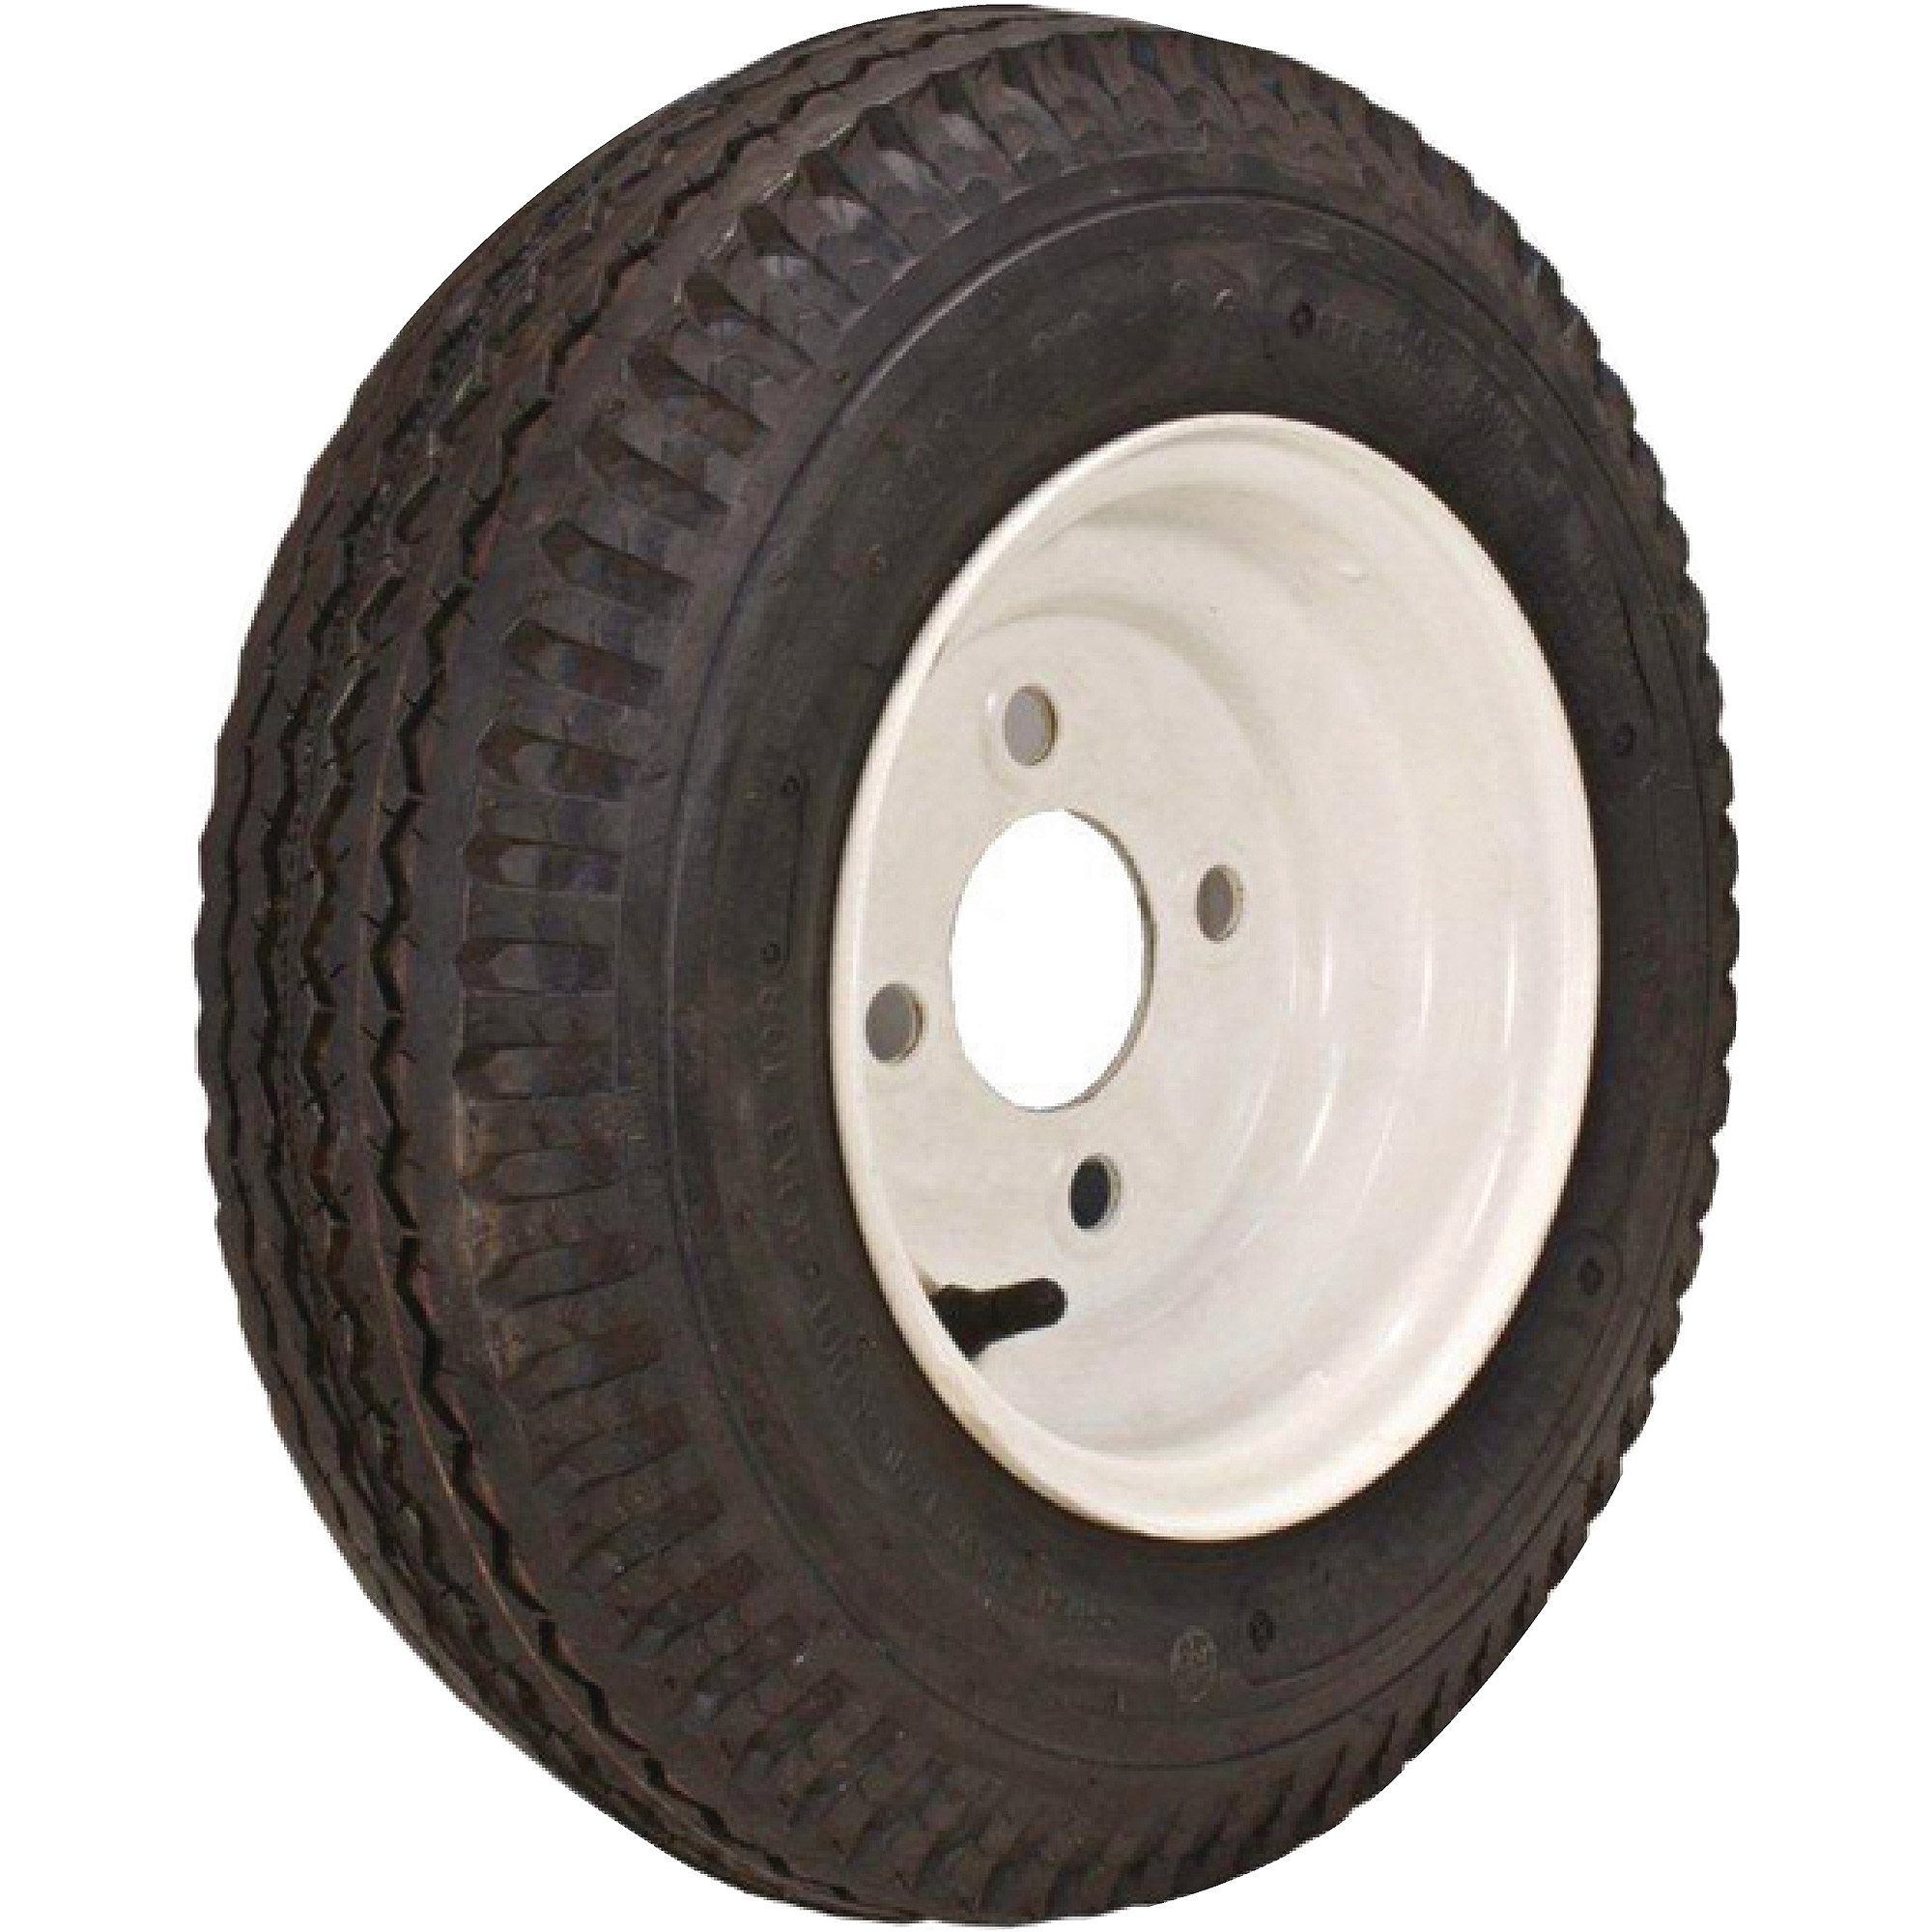 Loadstar Bias Tire and Wheel (Rim) Assembly 570-8 4 Hole 4 Ply